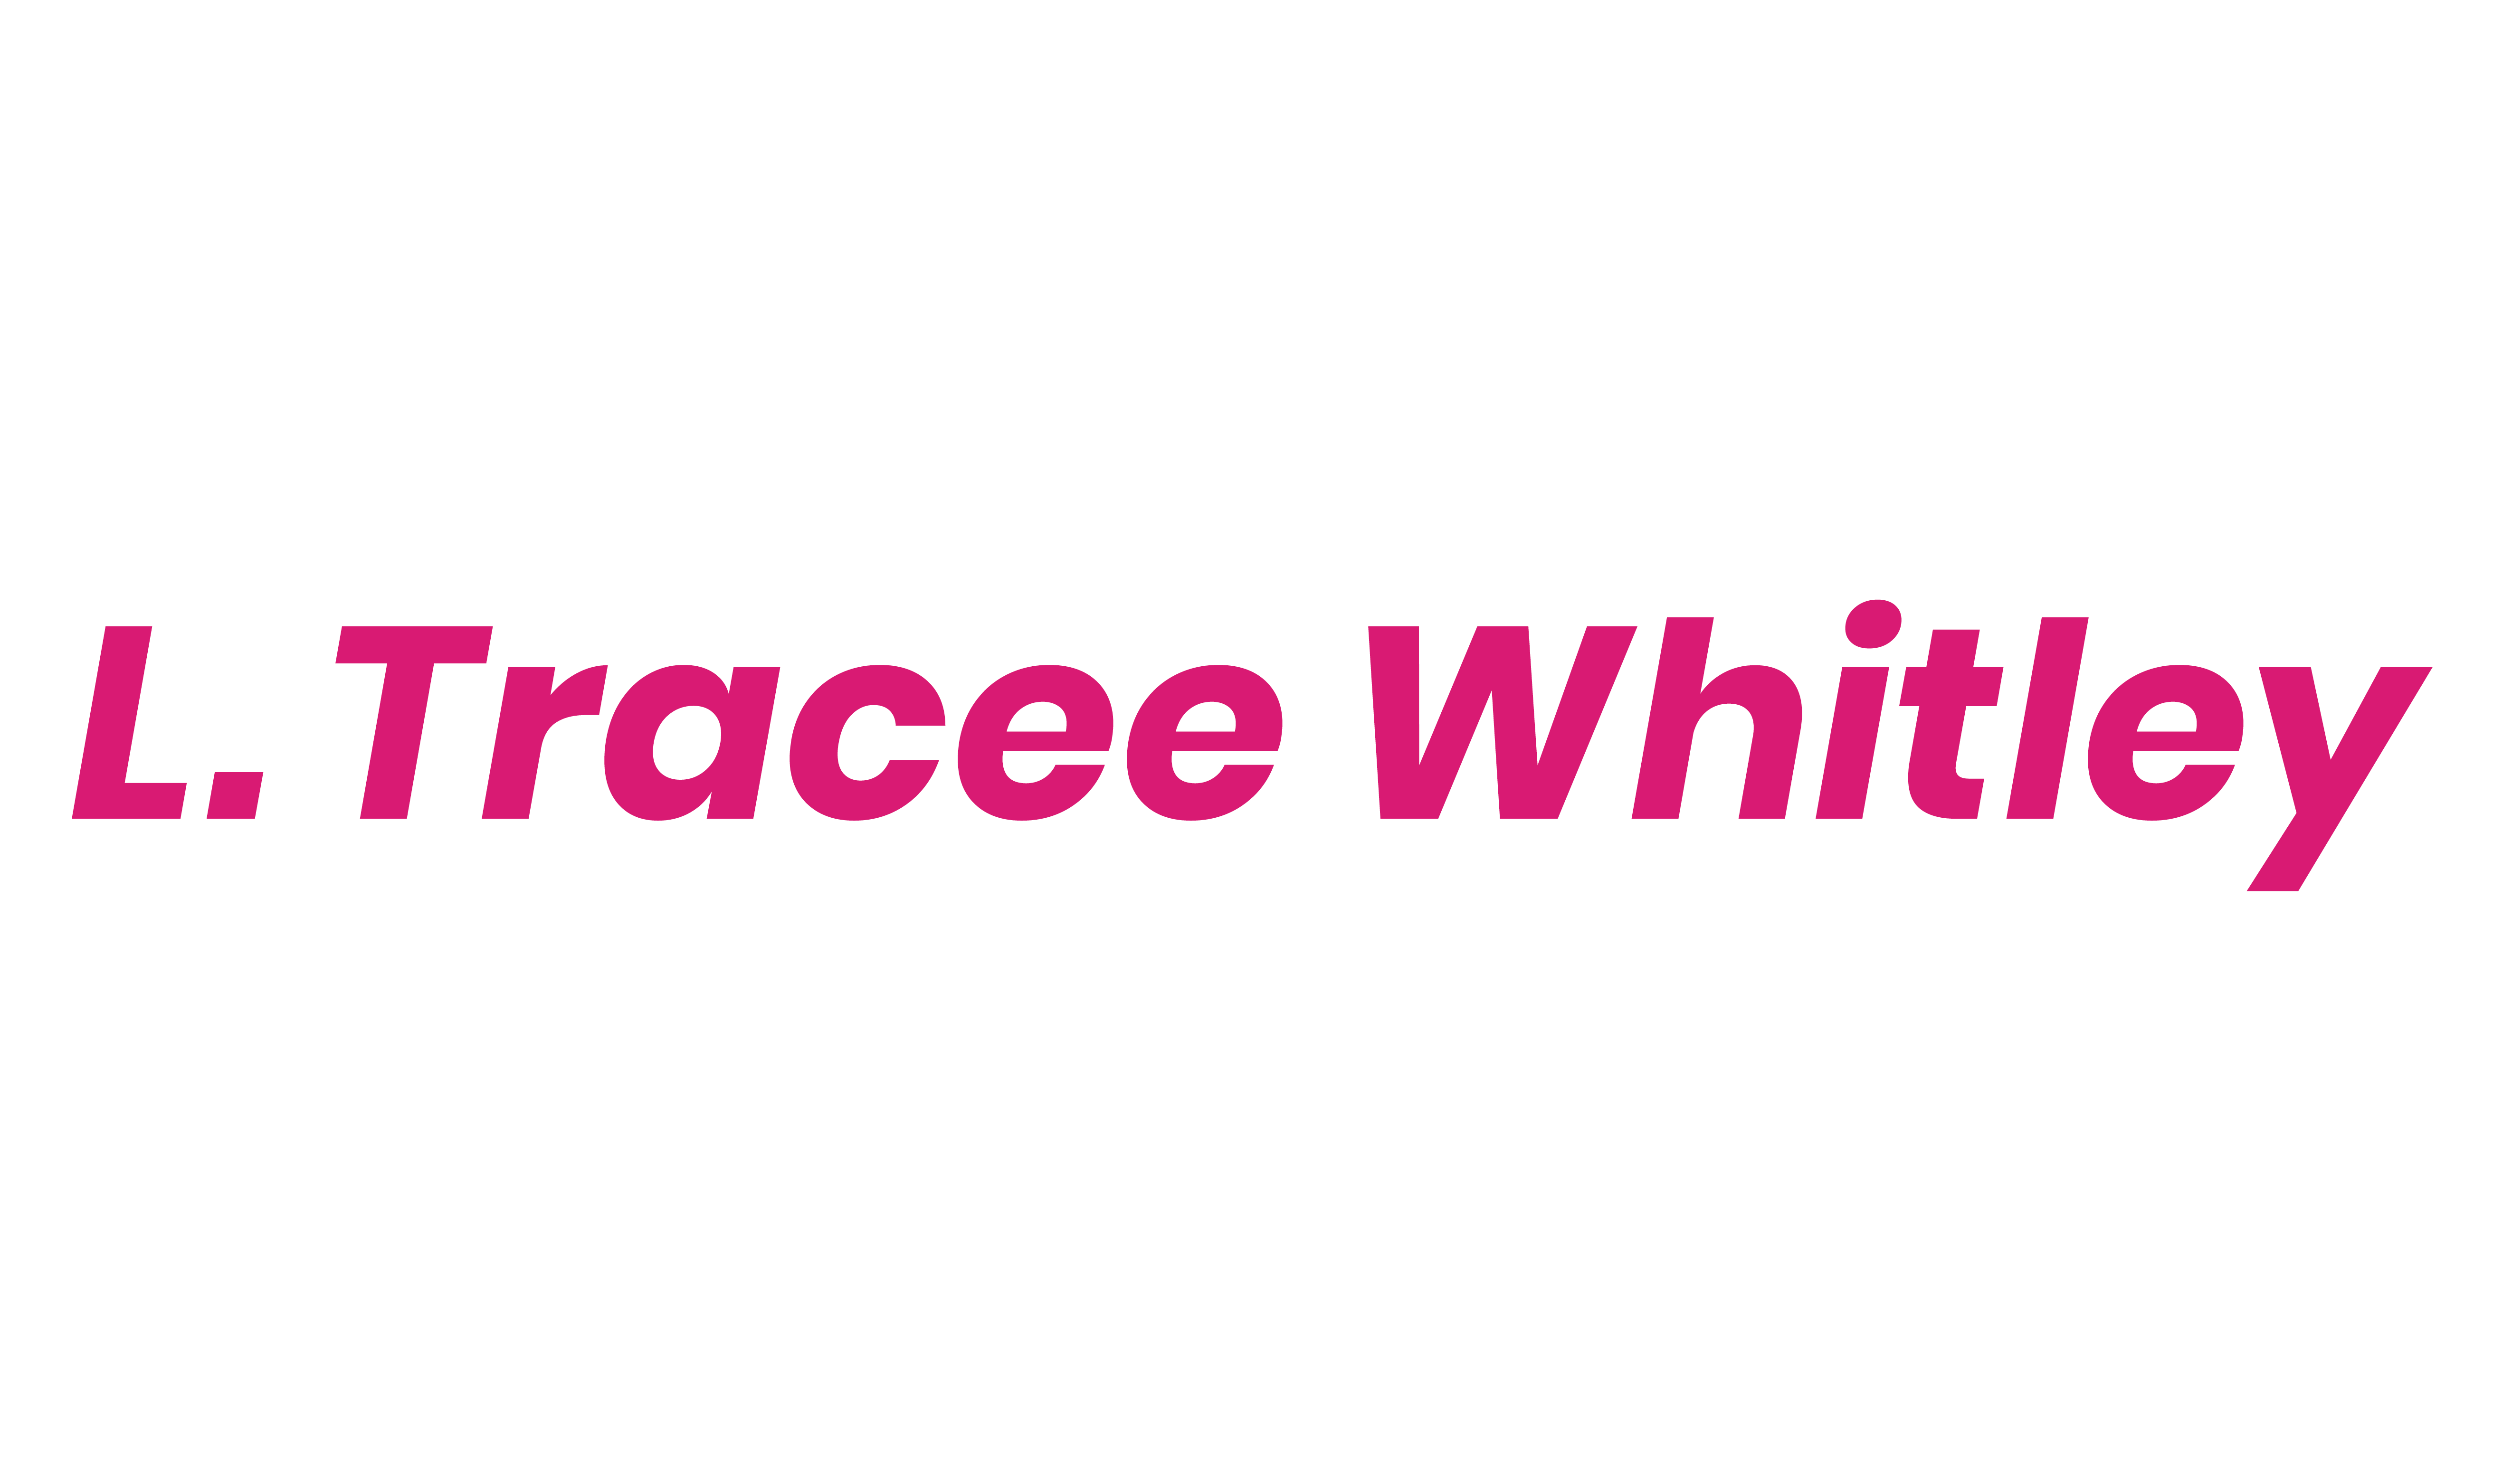 L. Tracee Whitley